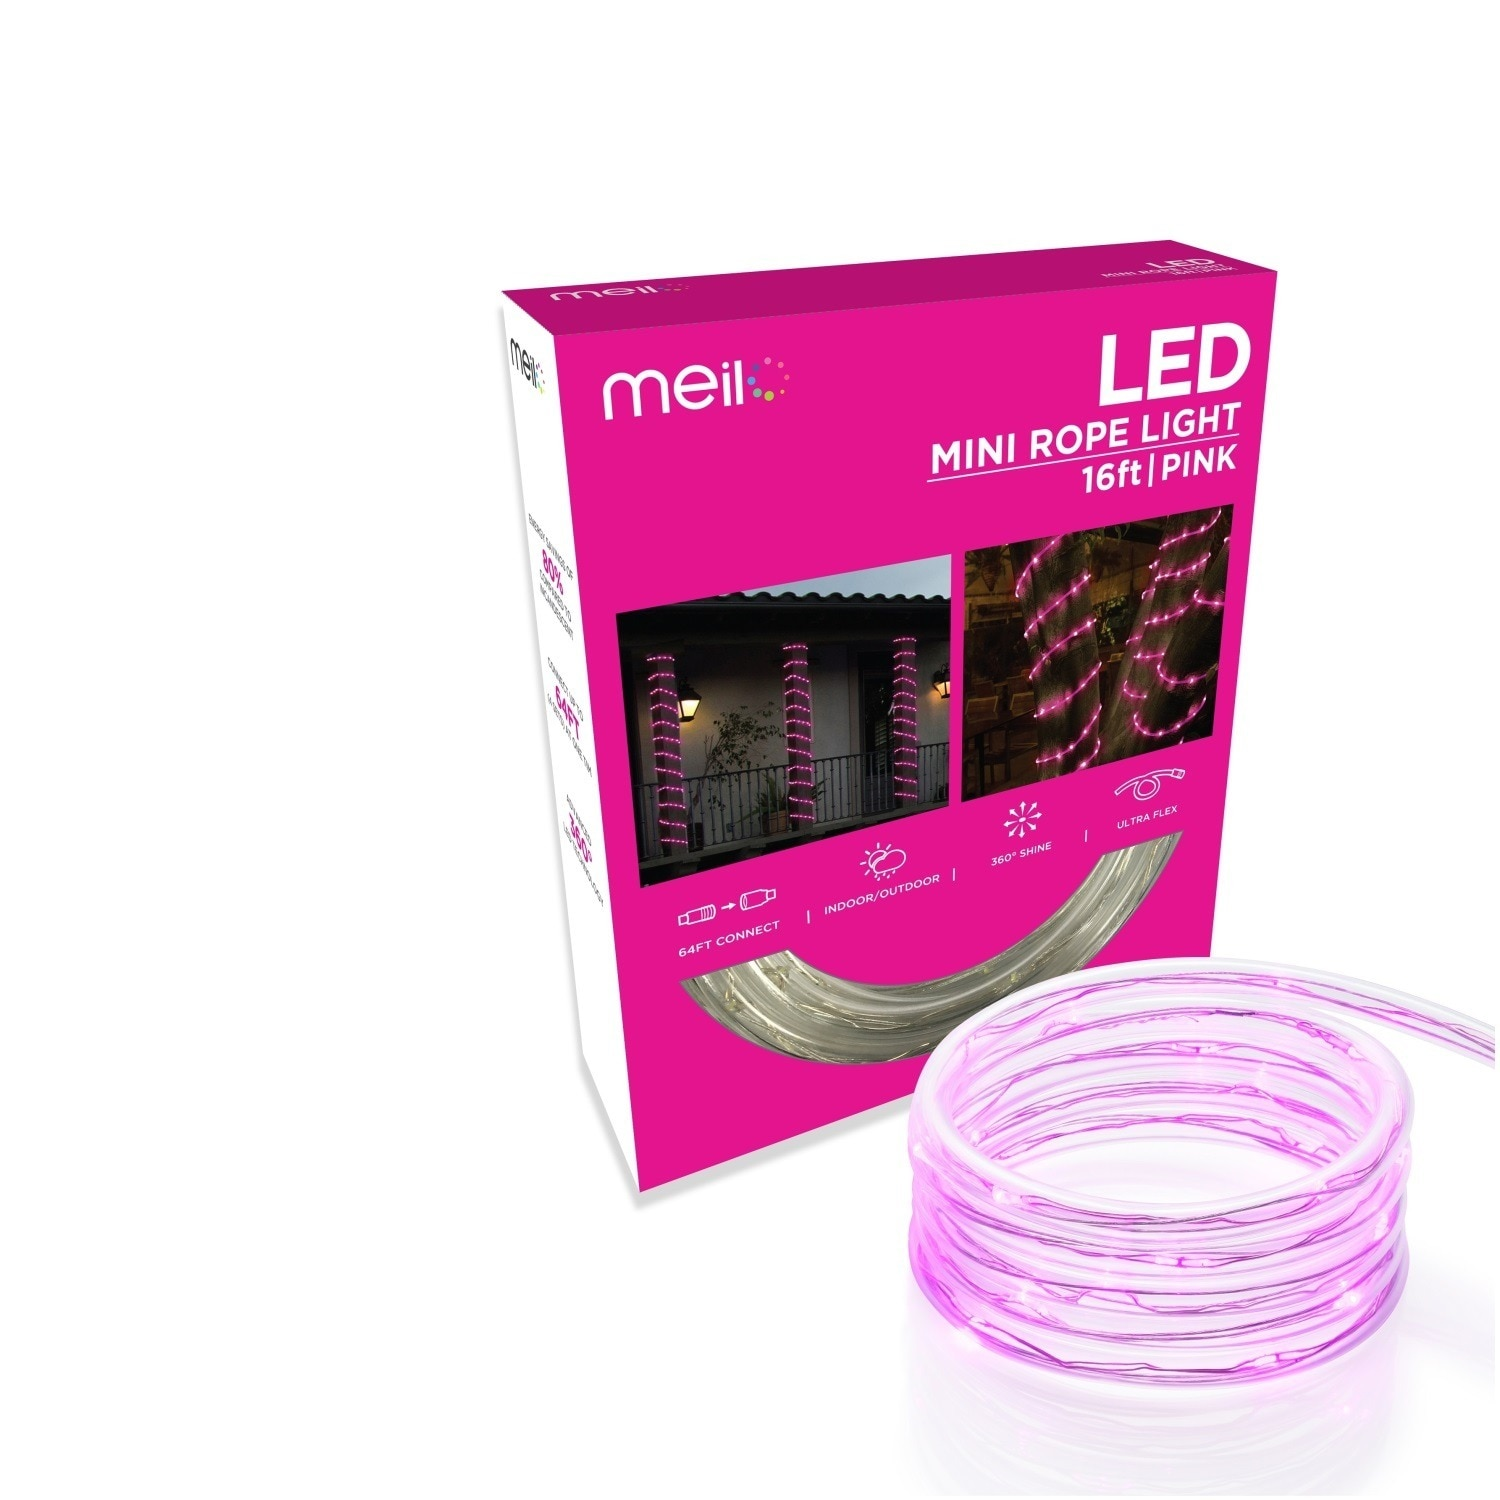 official photos 52cee ac6a9 Meilo 16 ft. True-Tech LED Mini Rope Light with 360-degree Directional  Shine - 16'